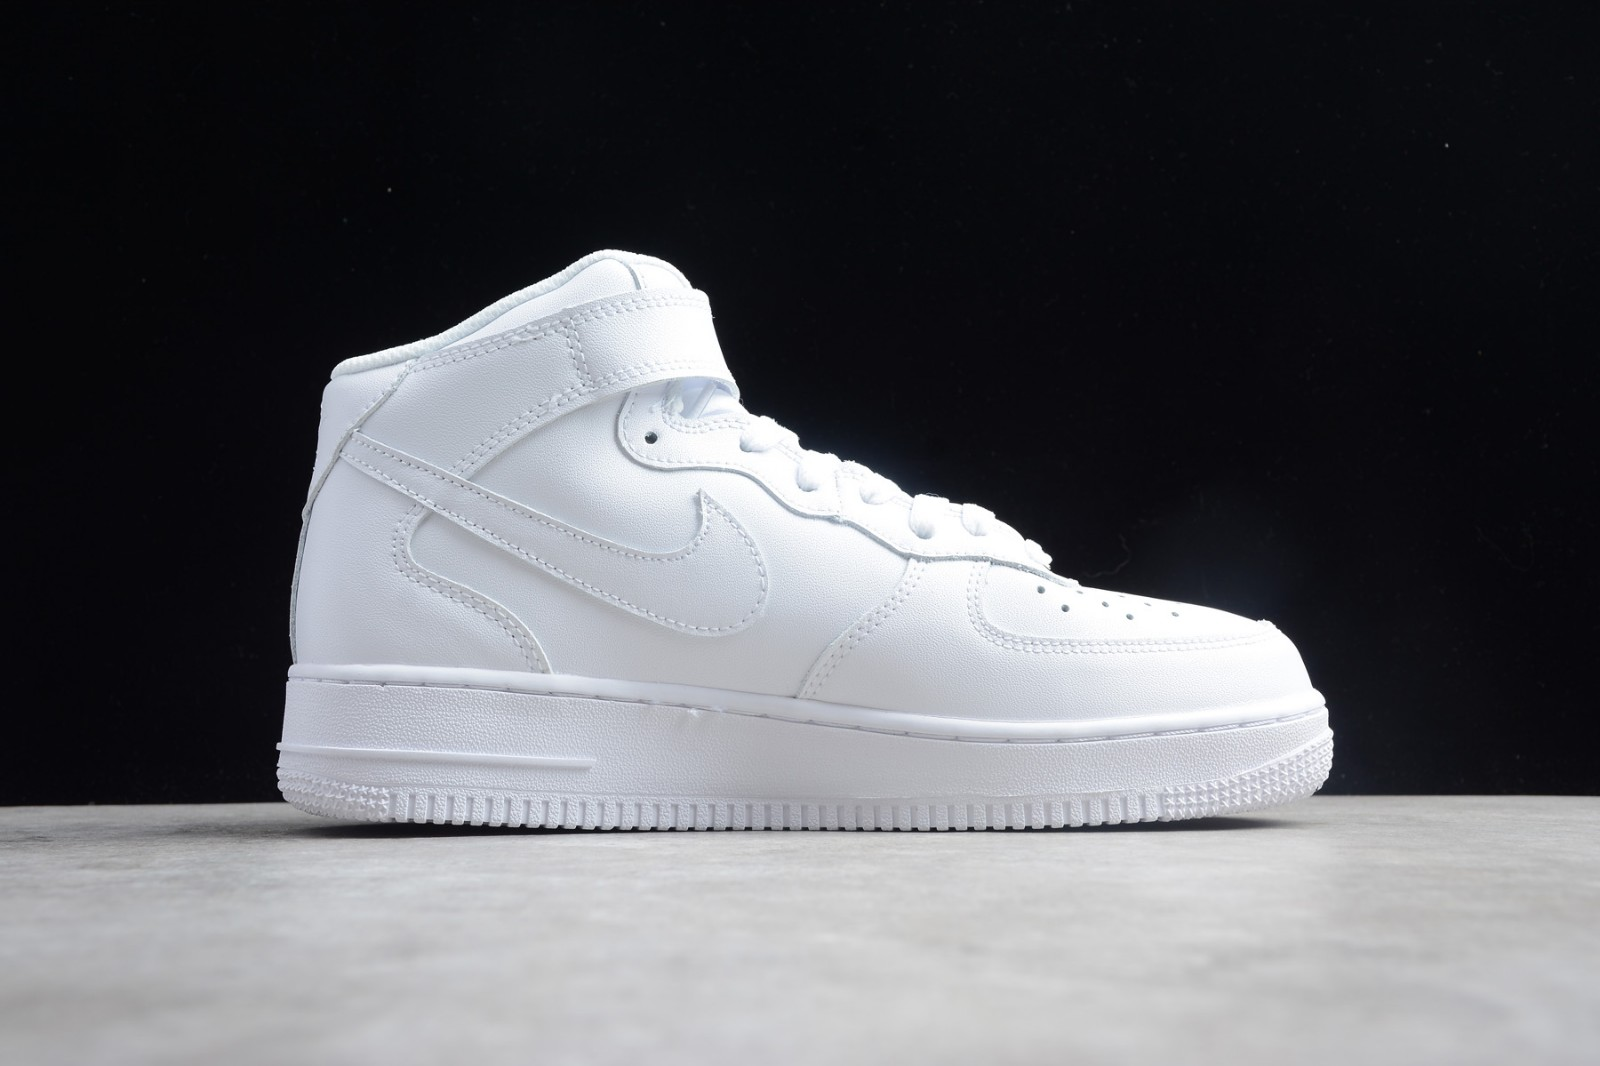 Nike Air Force 1 Mid 07 White Sneakers Hot Dog 315123 111